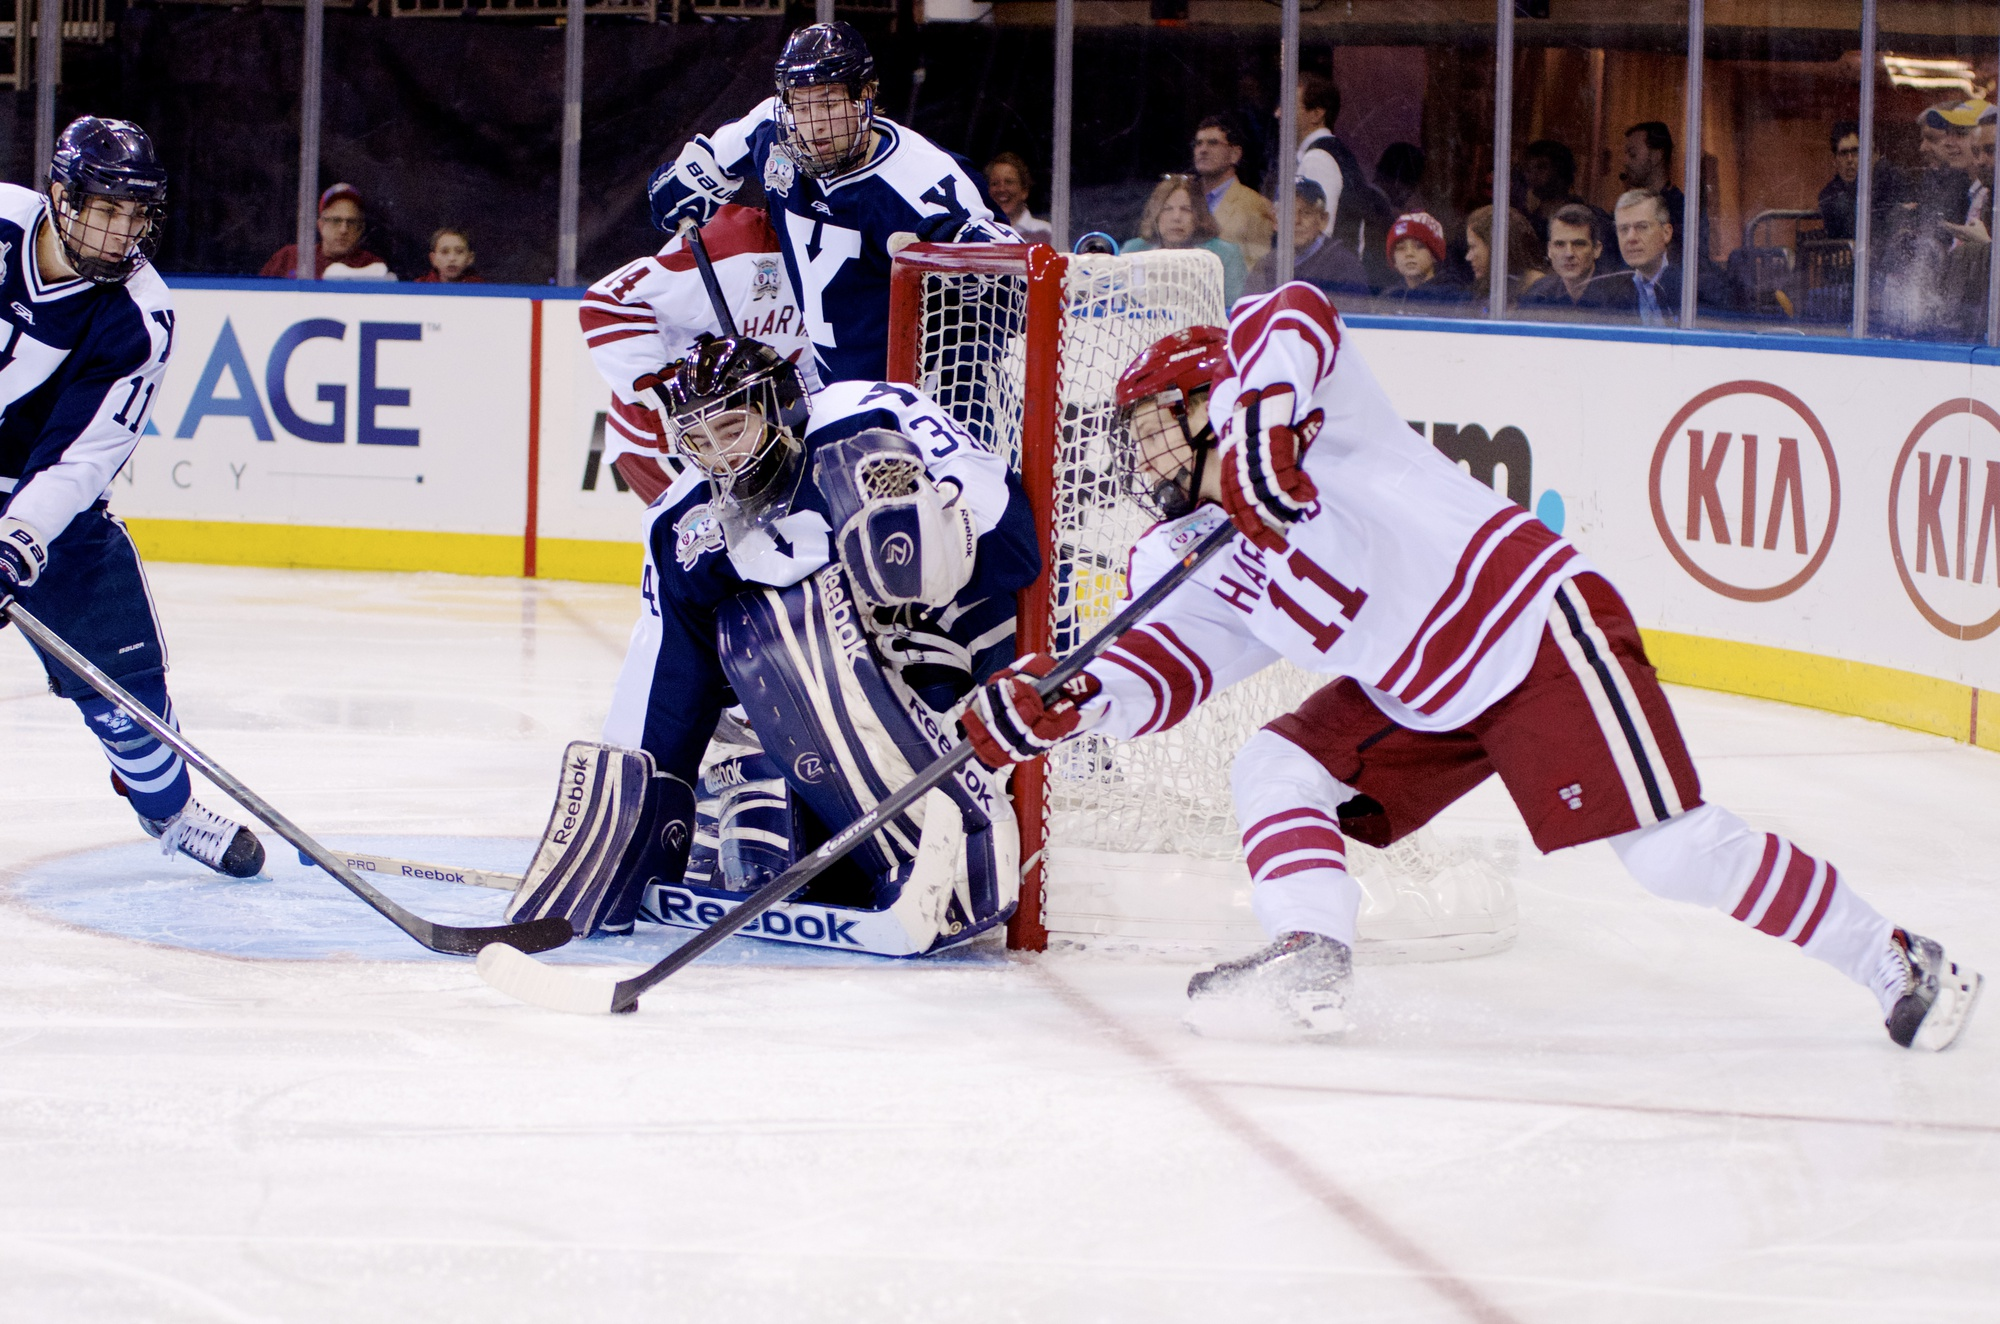 Sophomore forward Kyle Criscuolo attempts a shot on Yale goaltender Alex Lyon. Lyon held Harvard to just one goal, saving 23 of 24 shots.